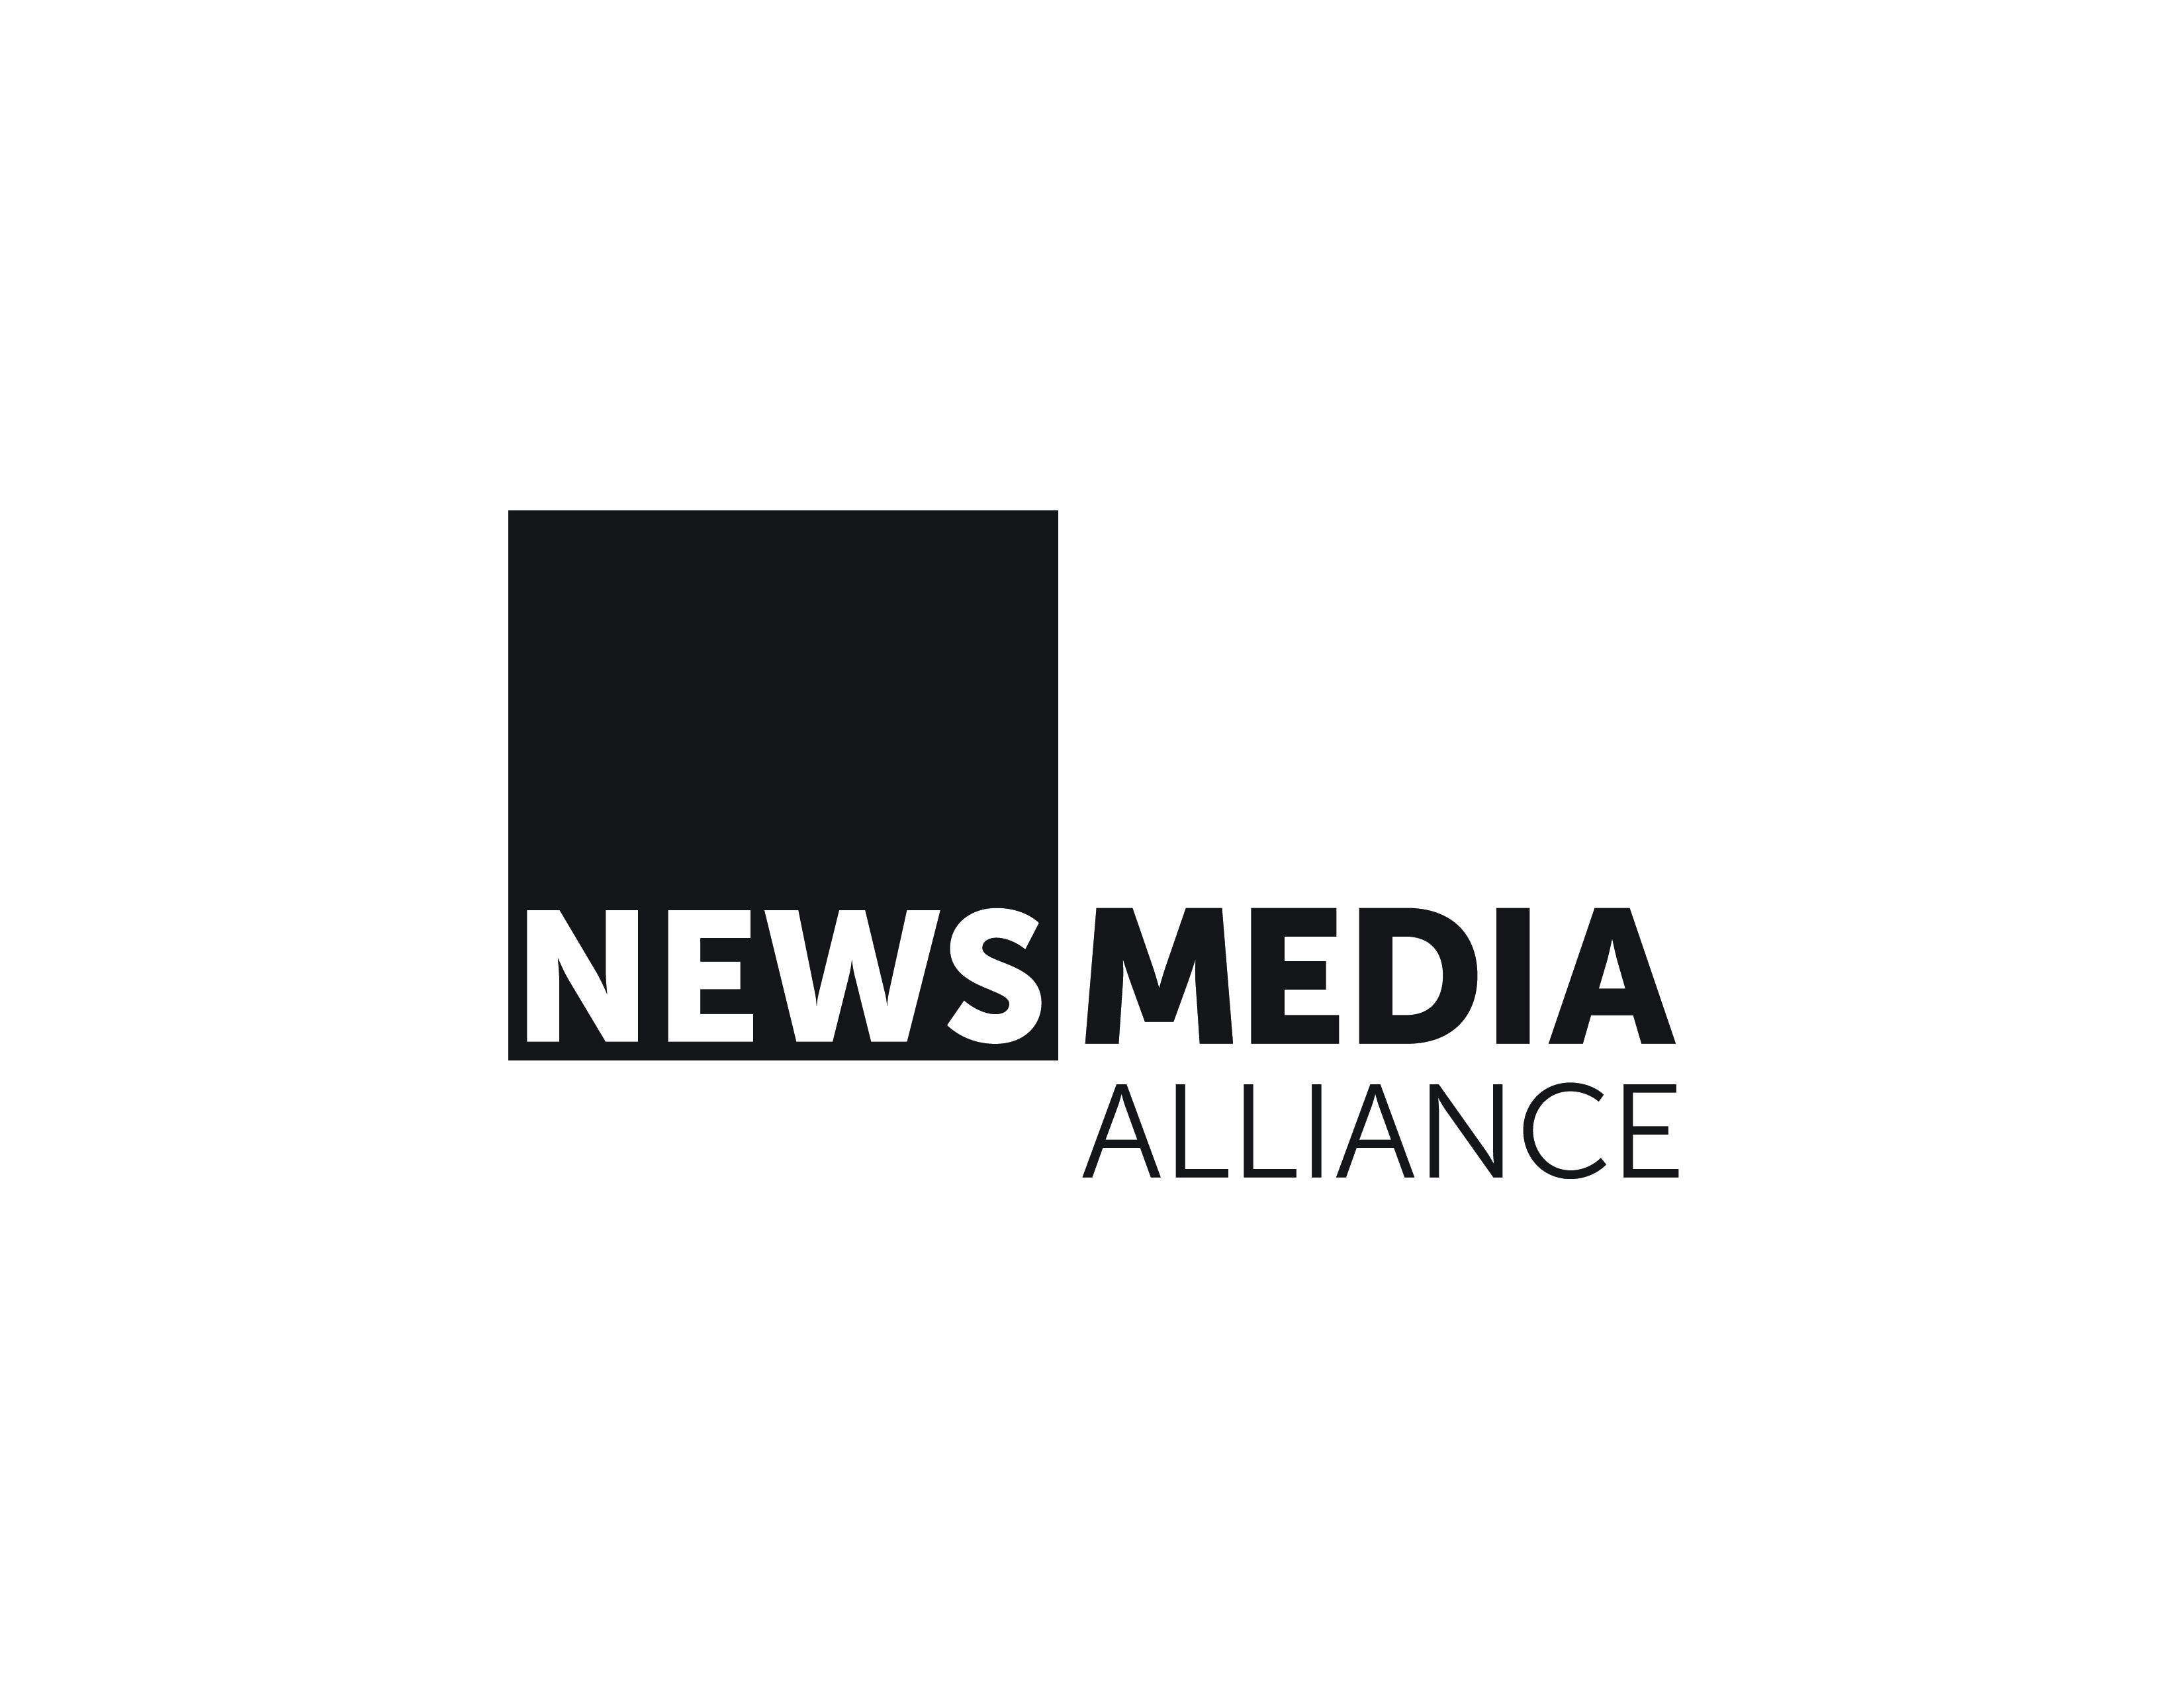 News Media Alliance